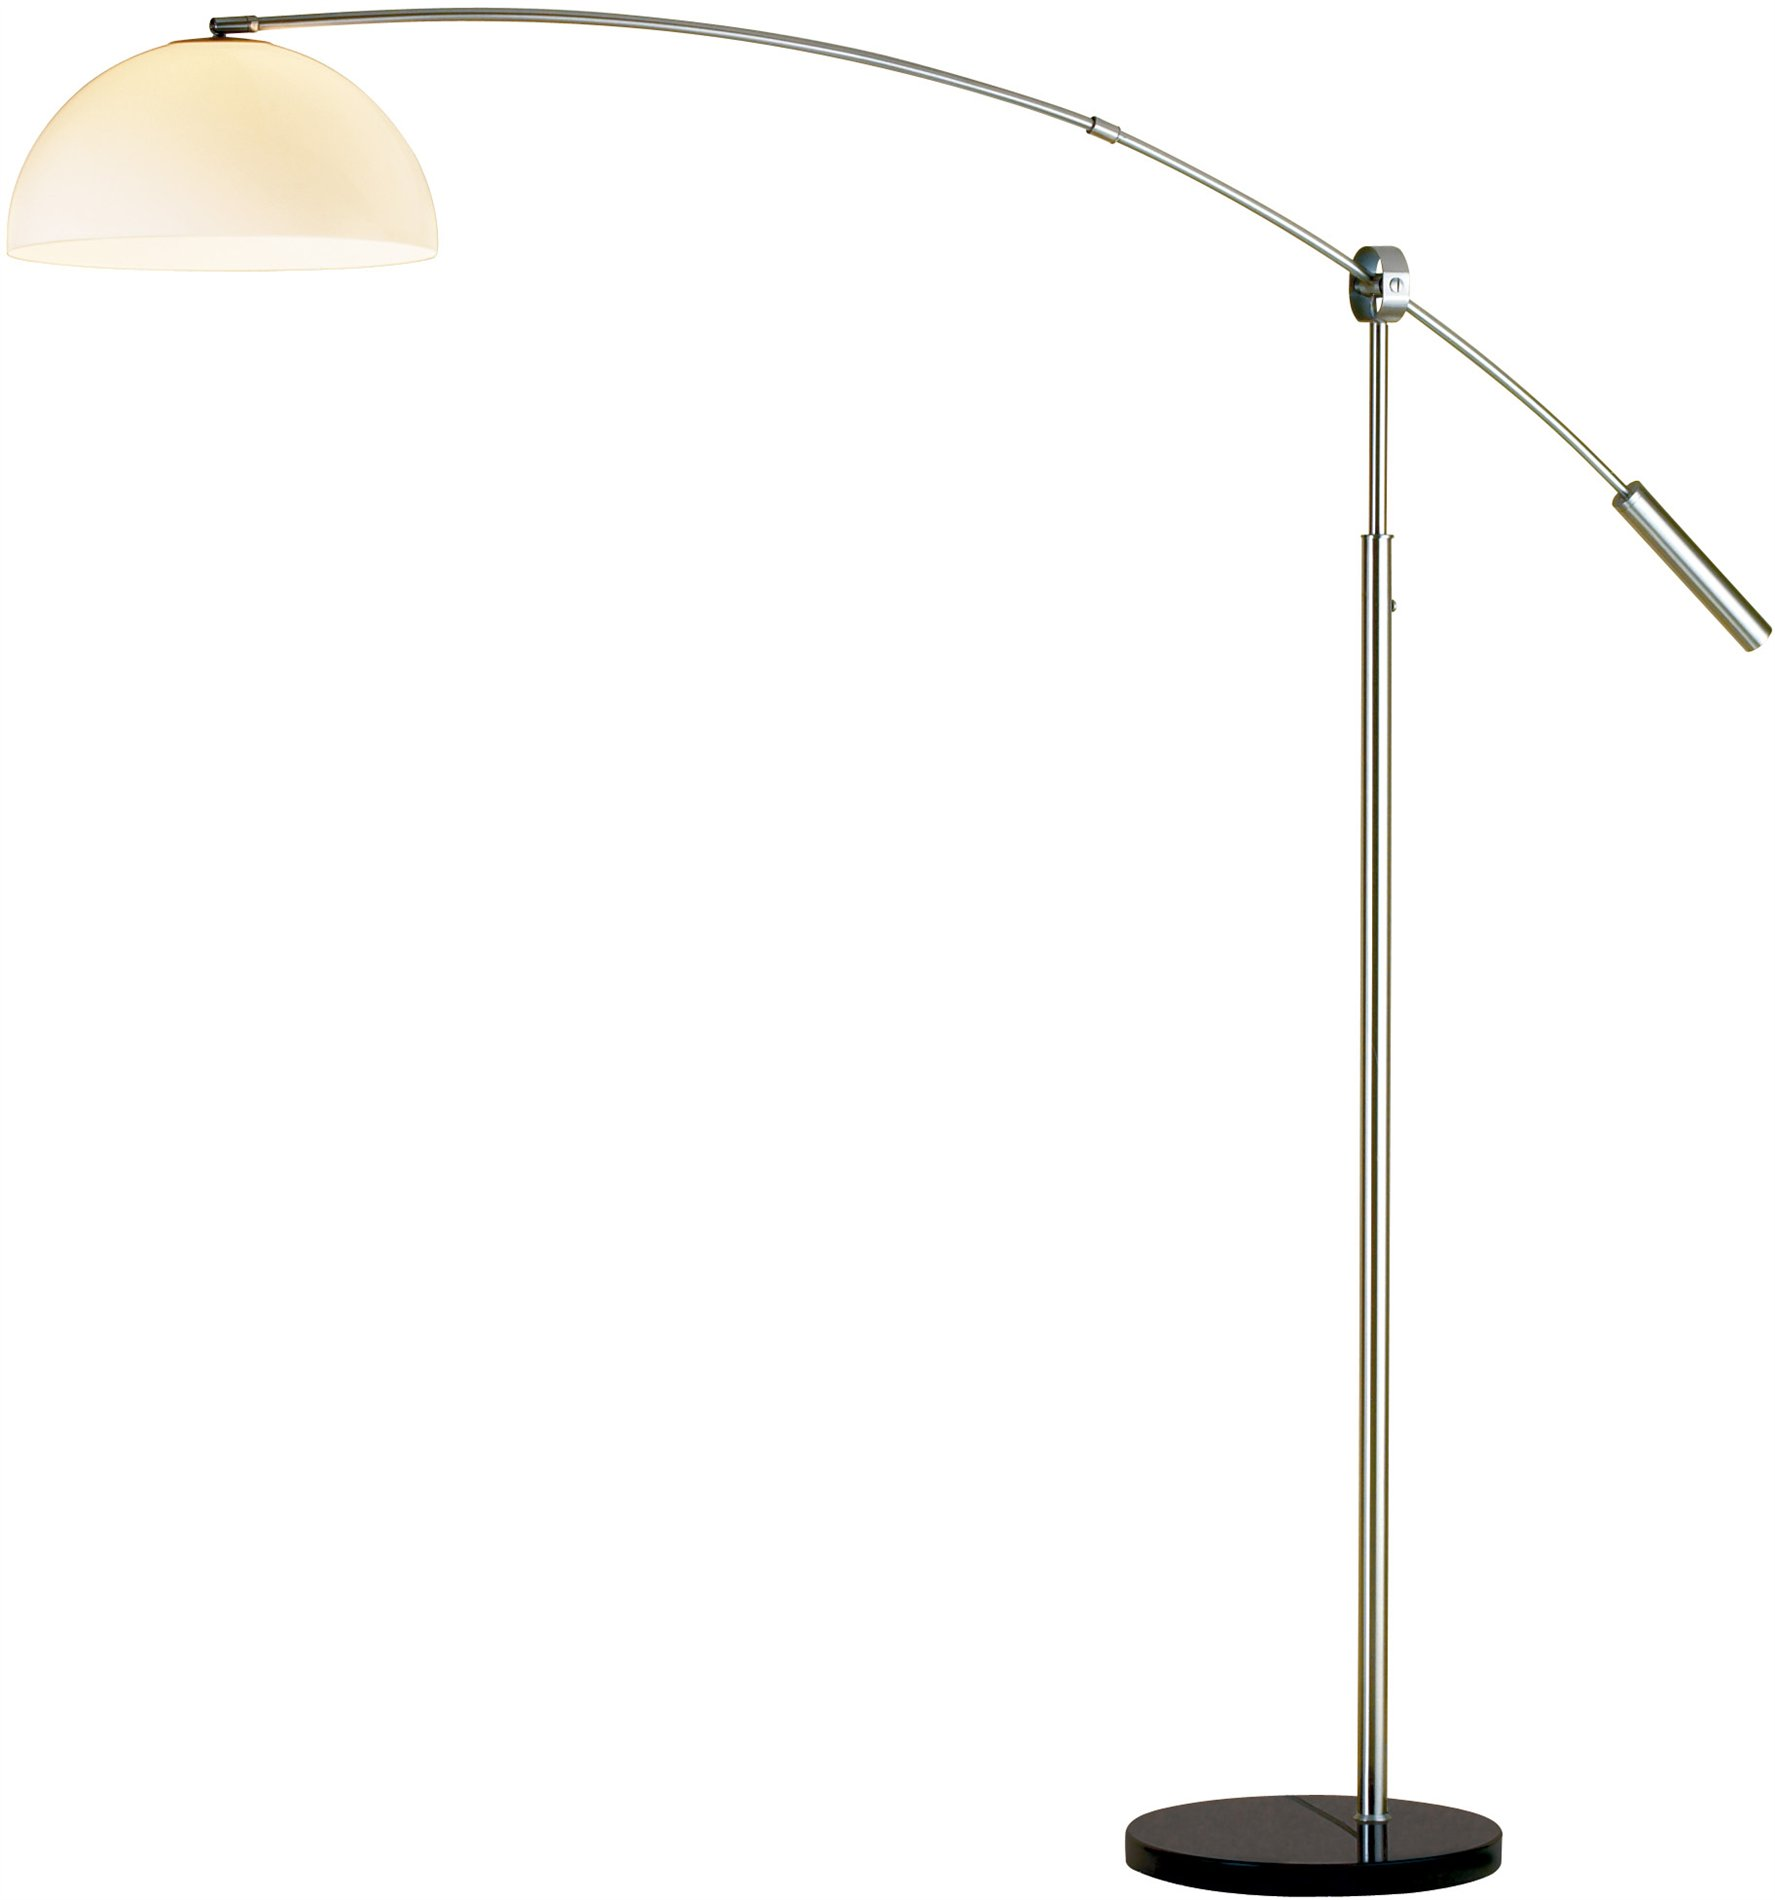 adesso outreach contemporary arc floor lamp ad 4134 22 see details. Black Bedroom Furniture Sets. Home Design Ideas